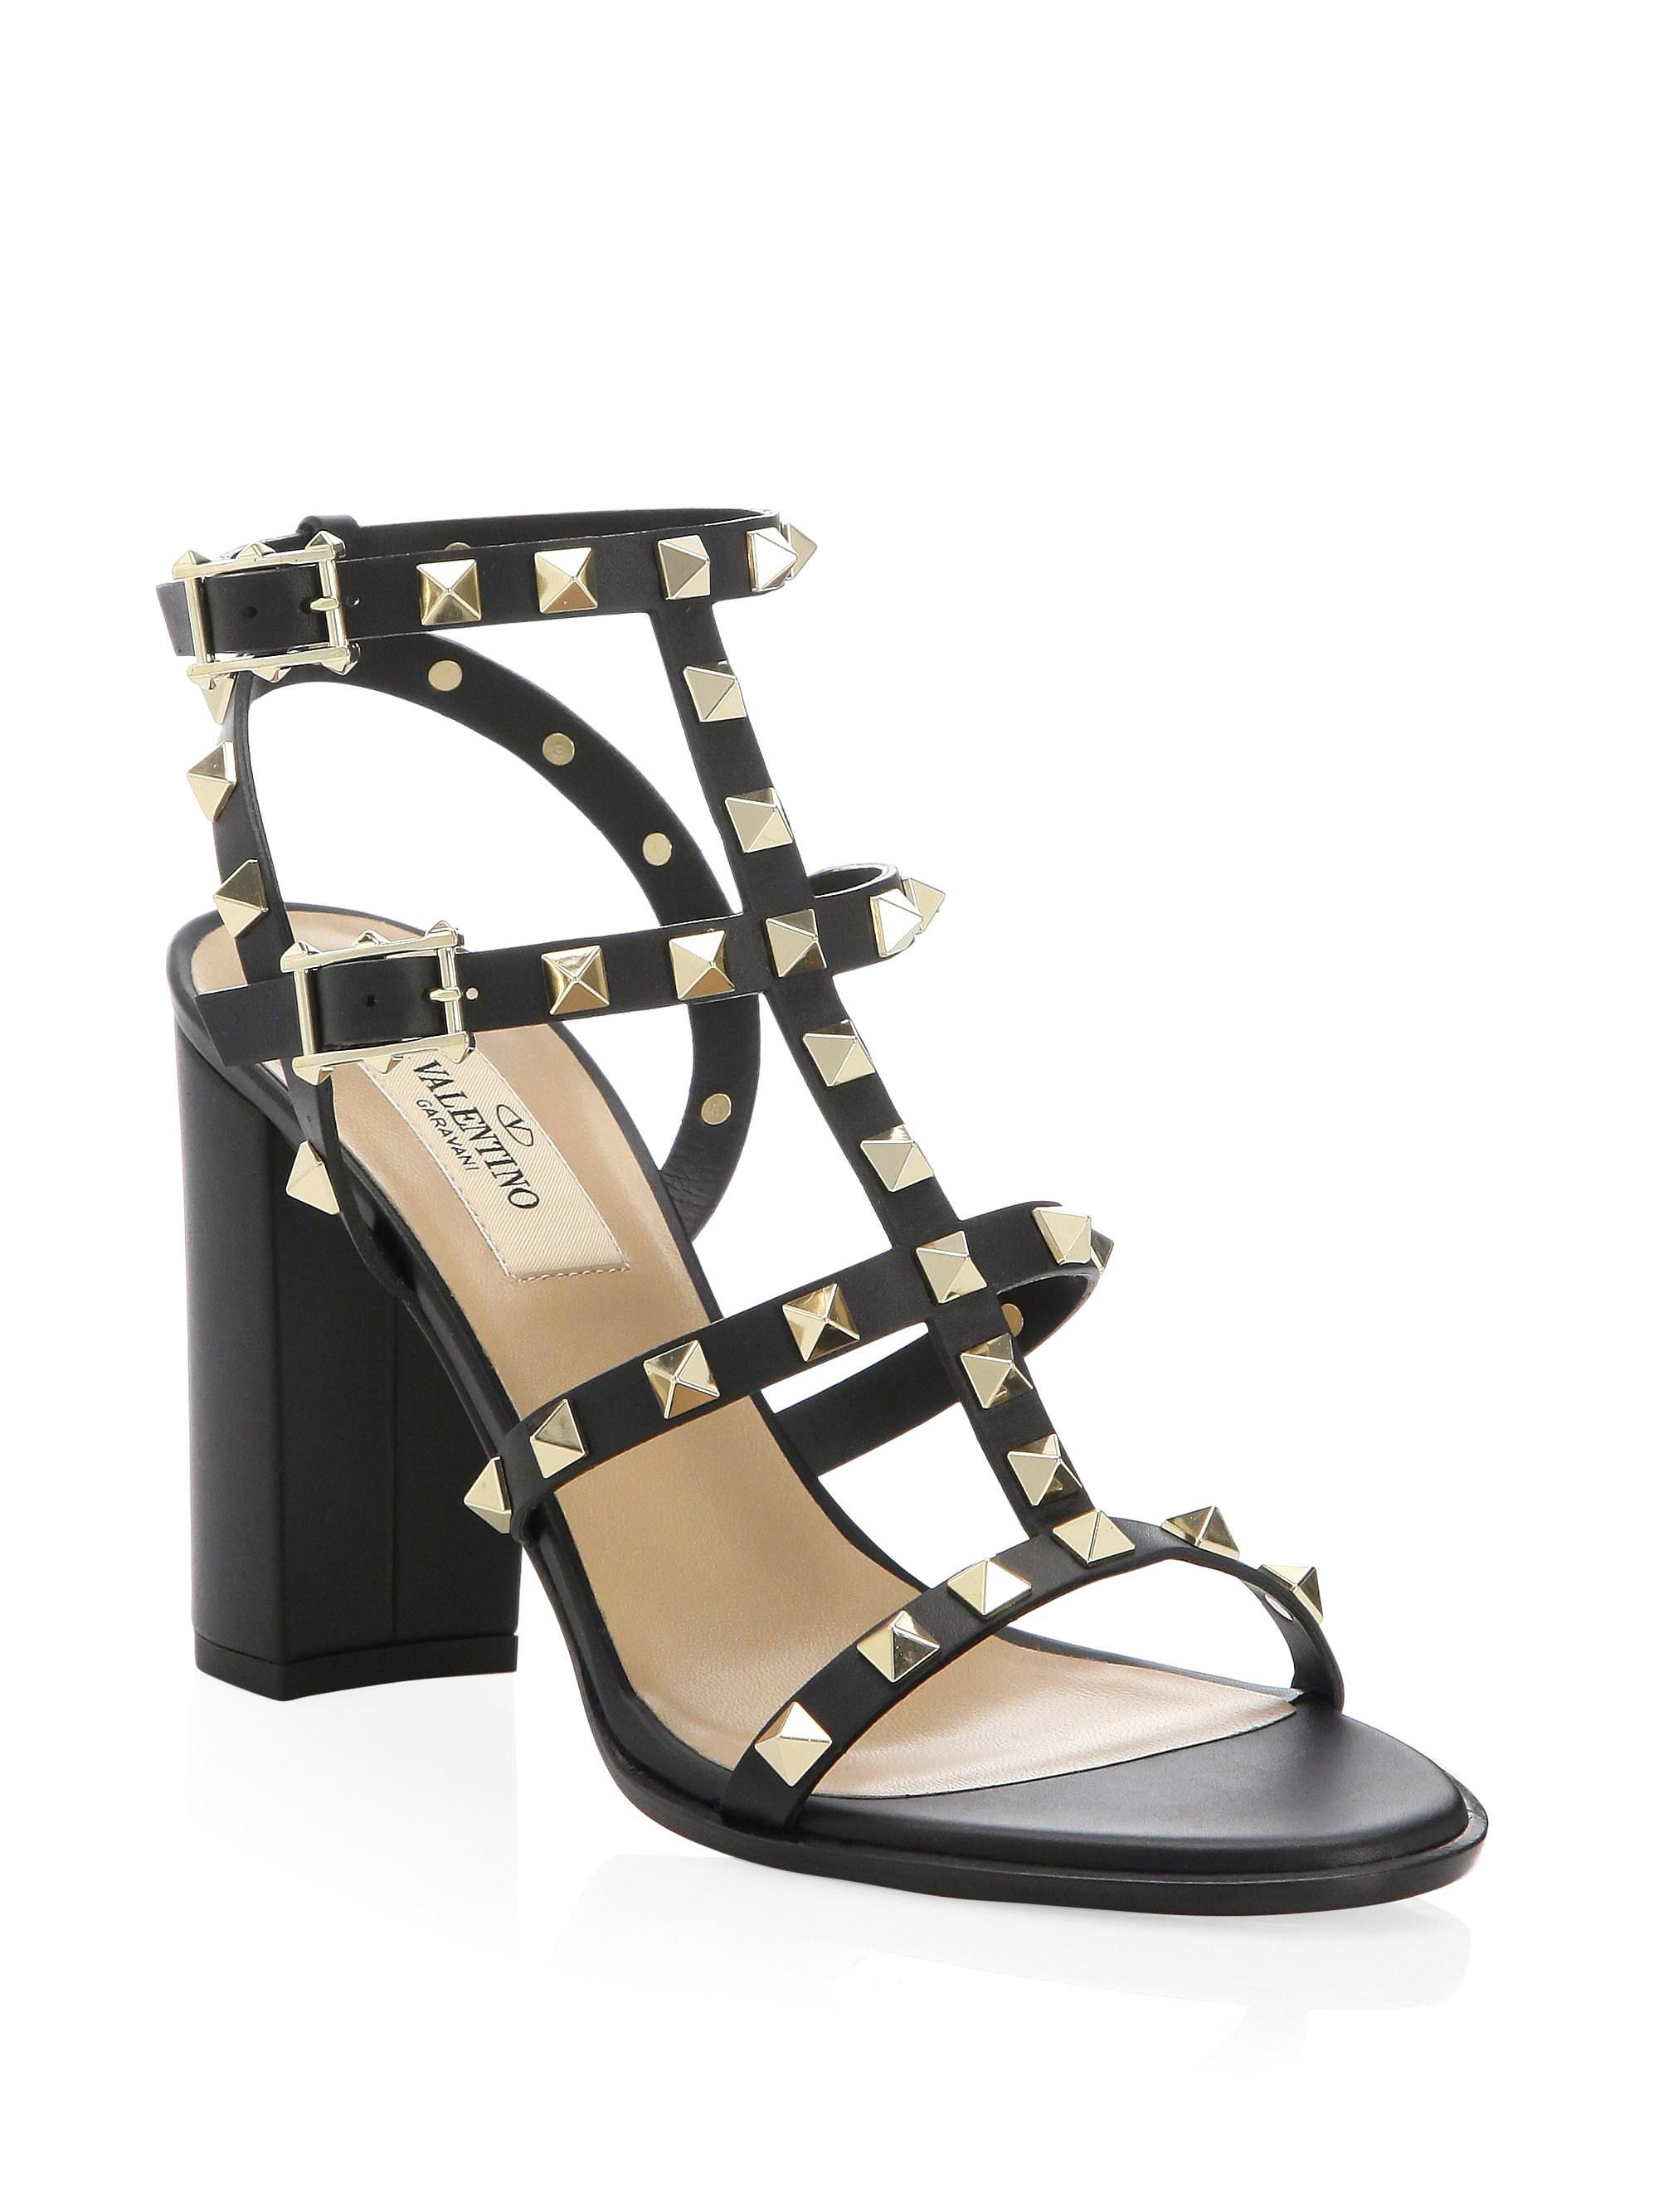 133a0ac18b3 Valentino - Black Rockstud Leather T-strap Block Heel Sandals - Lyst. View  fullscreen